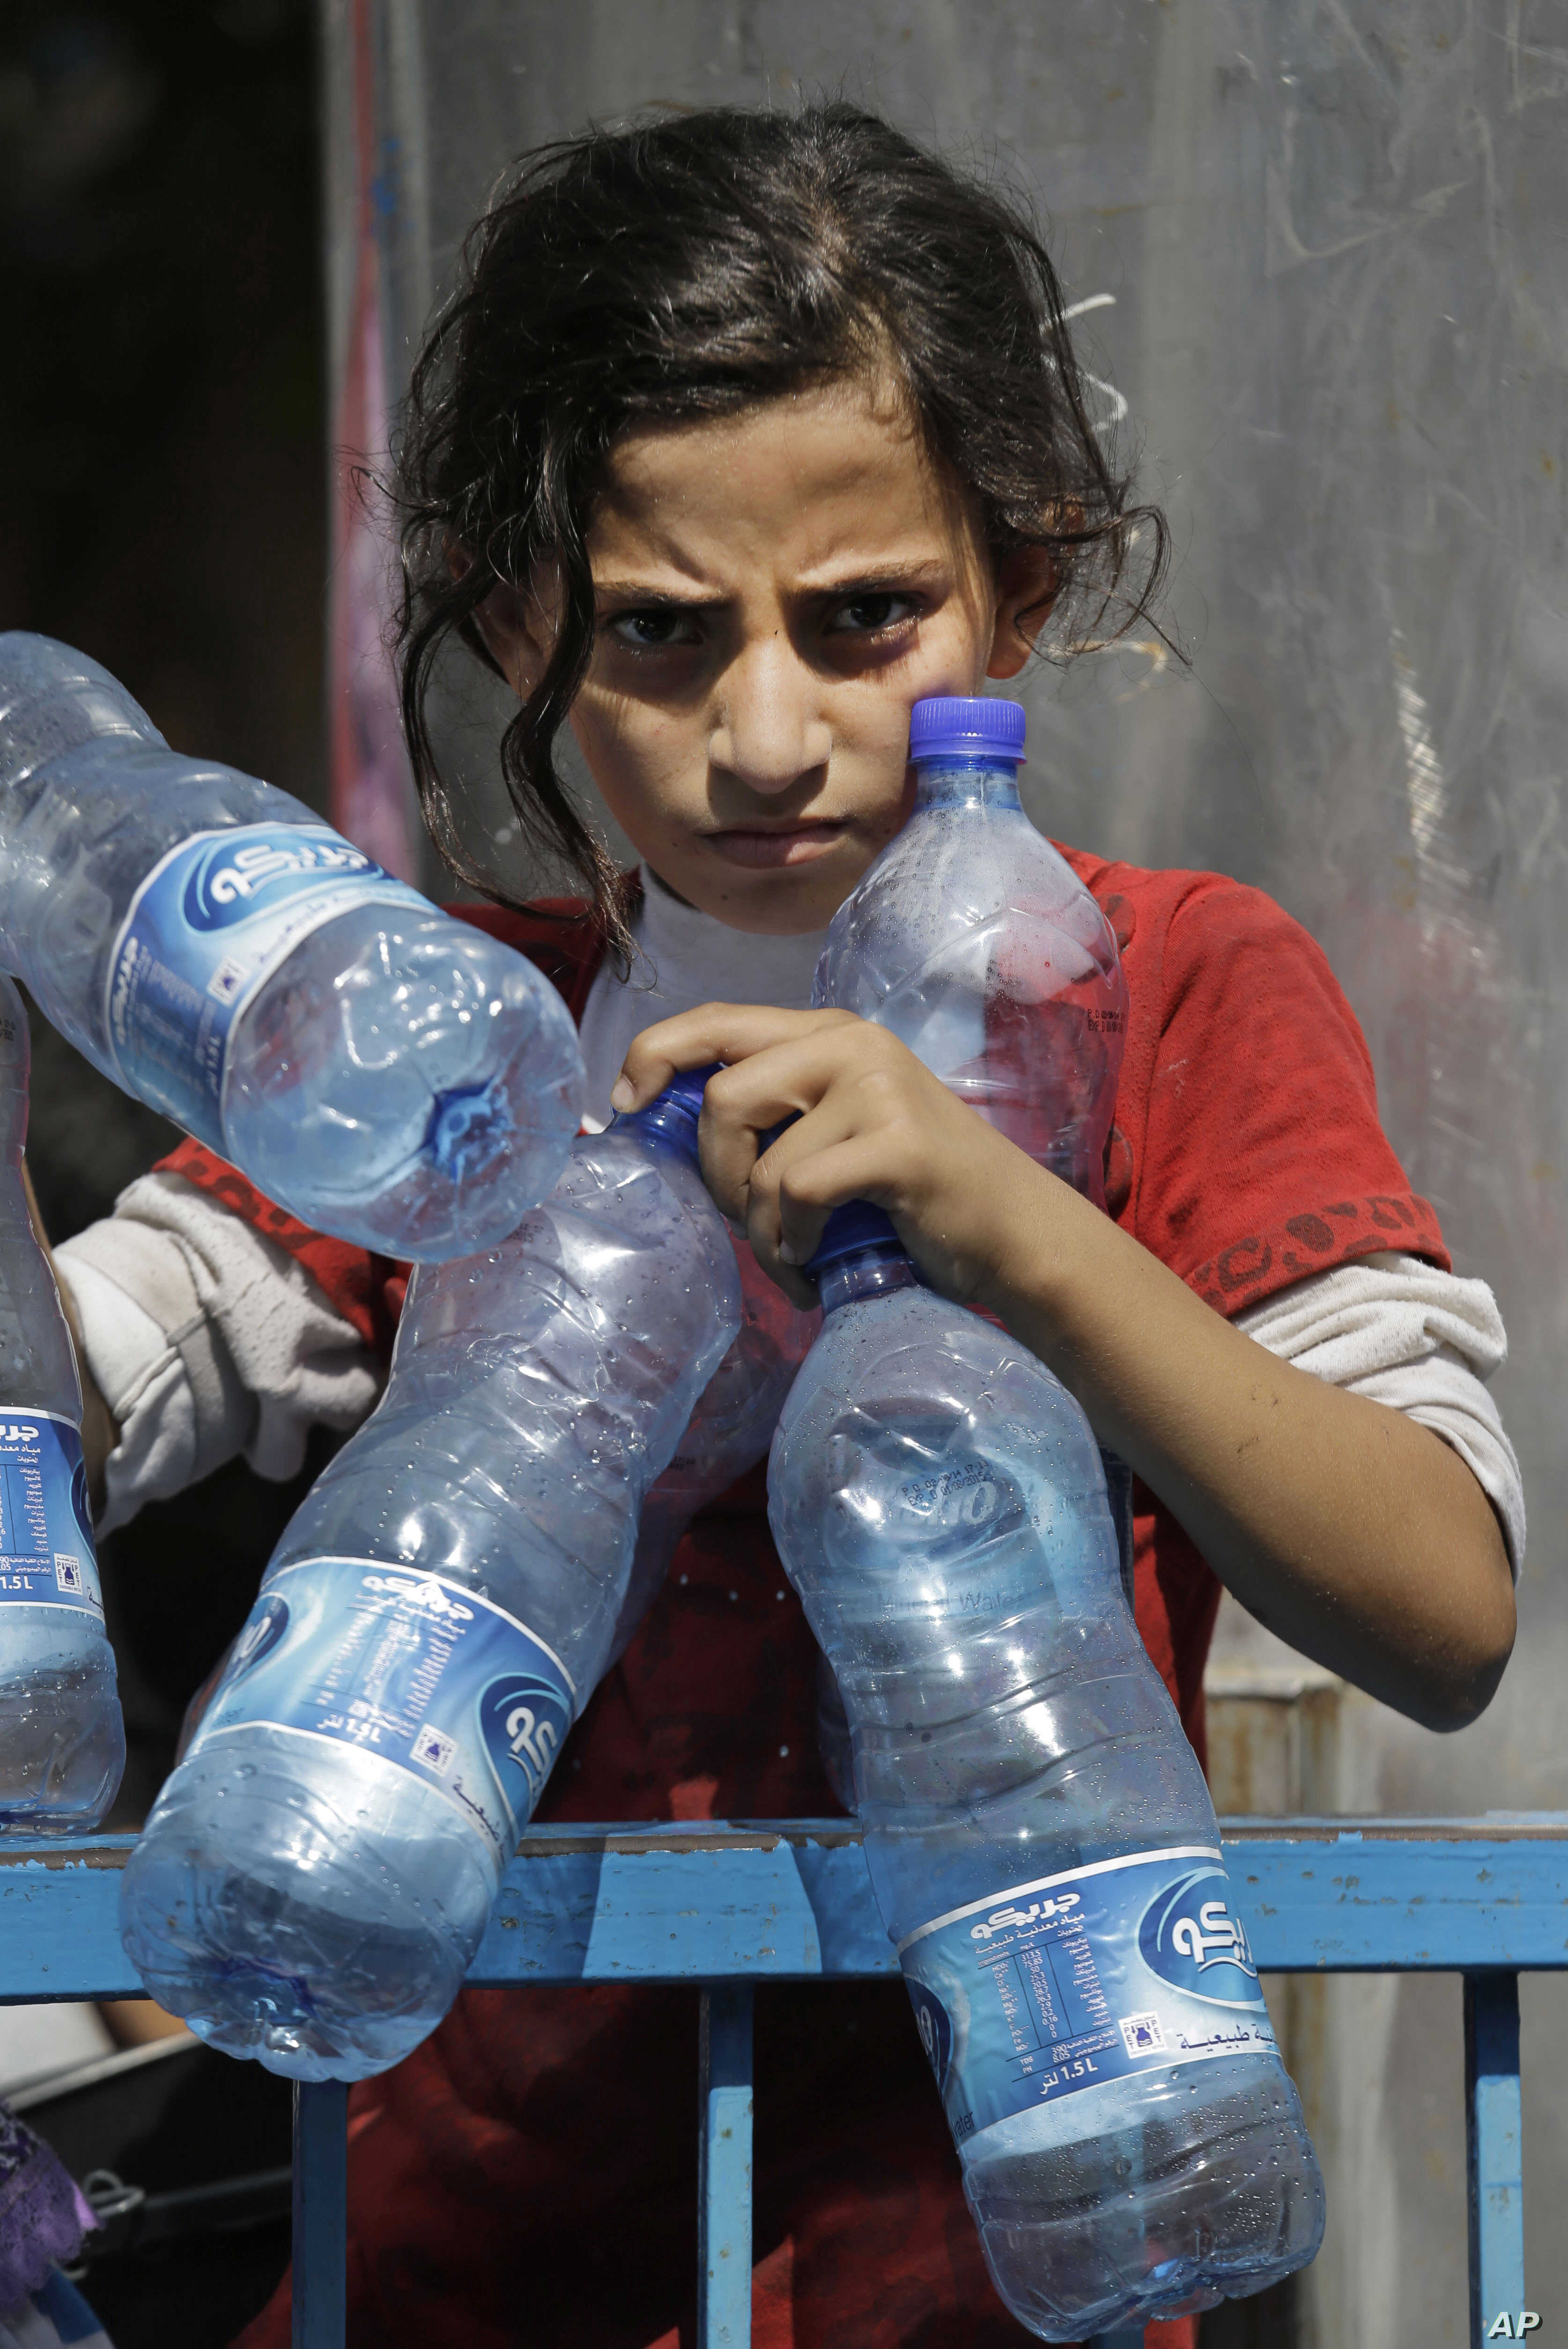 Palestinian Naama Al Attar, 13, waits to collect water at a U.N. school in Gaza City on Aug. 8, 2014.